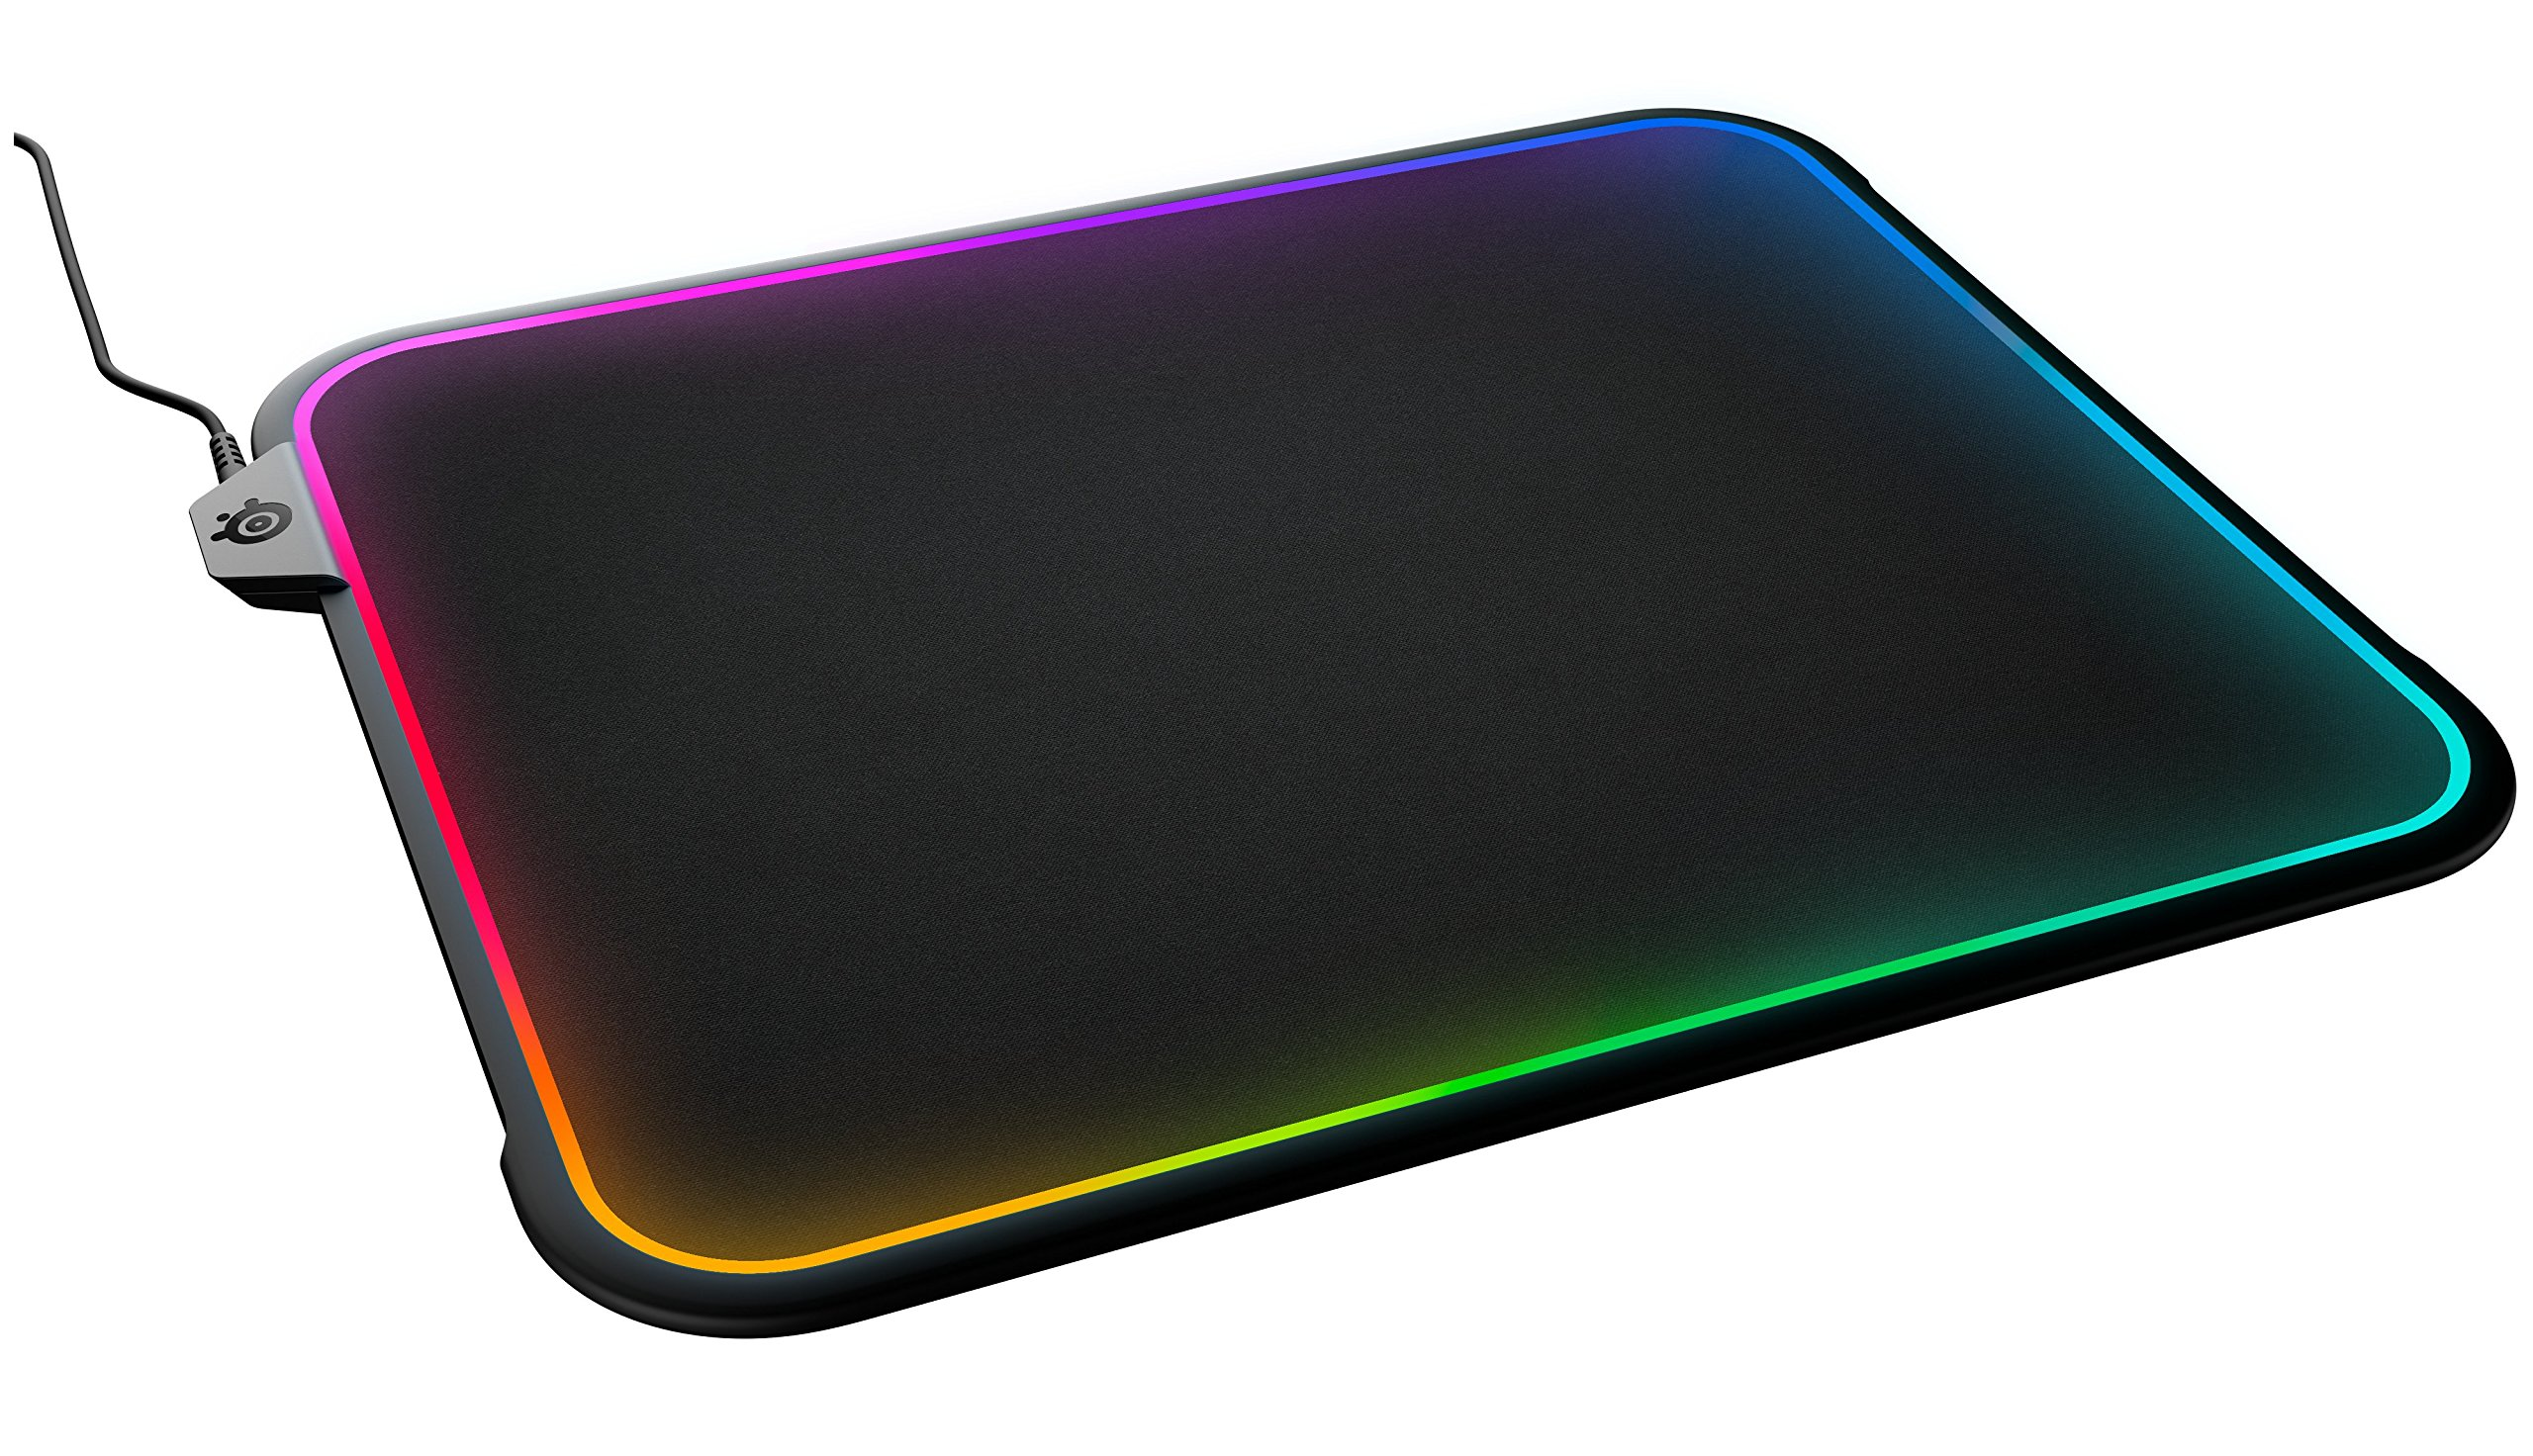 SteelSeries QcK Prism RGB Mousepad, Dual-Surface, 12-Zone Lighting with Gamesense by SteelSeries